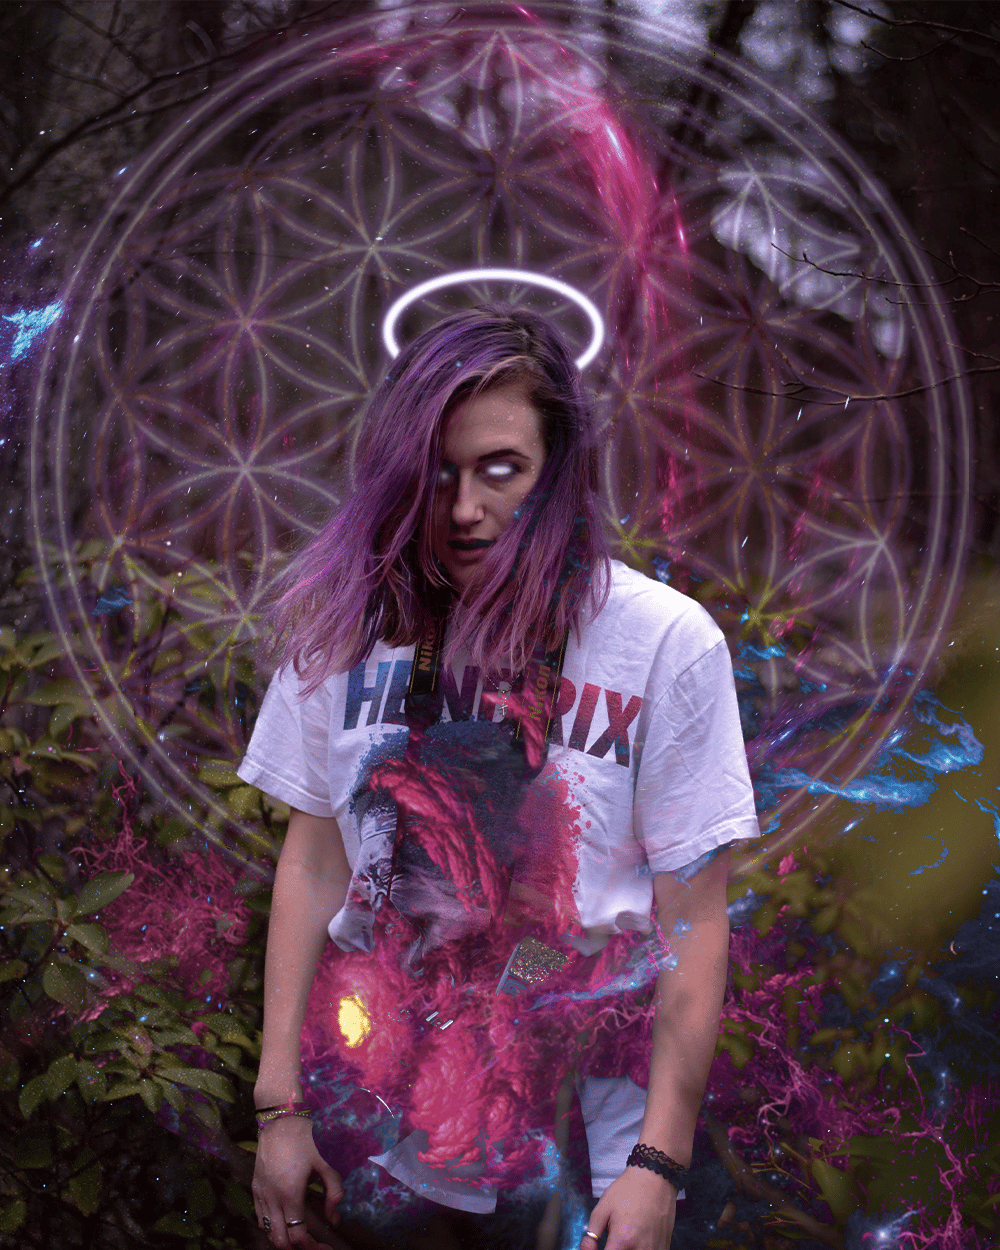 Cosmic Angel - image 1 - student project